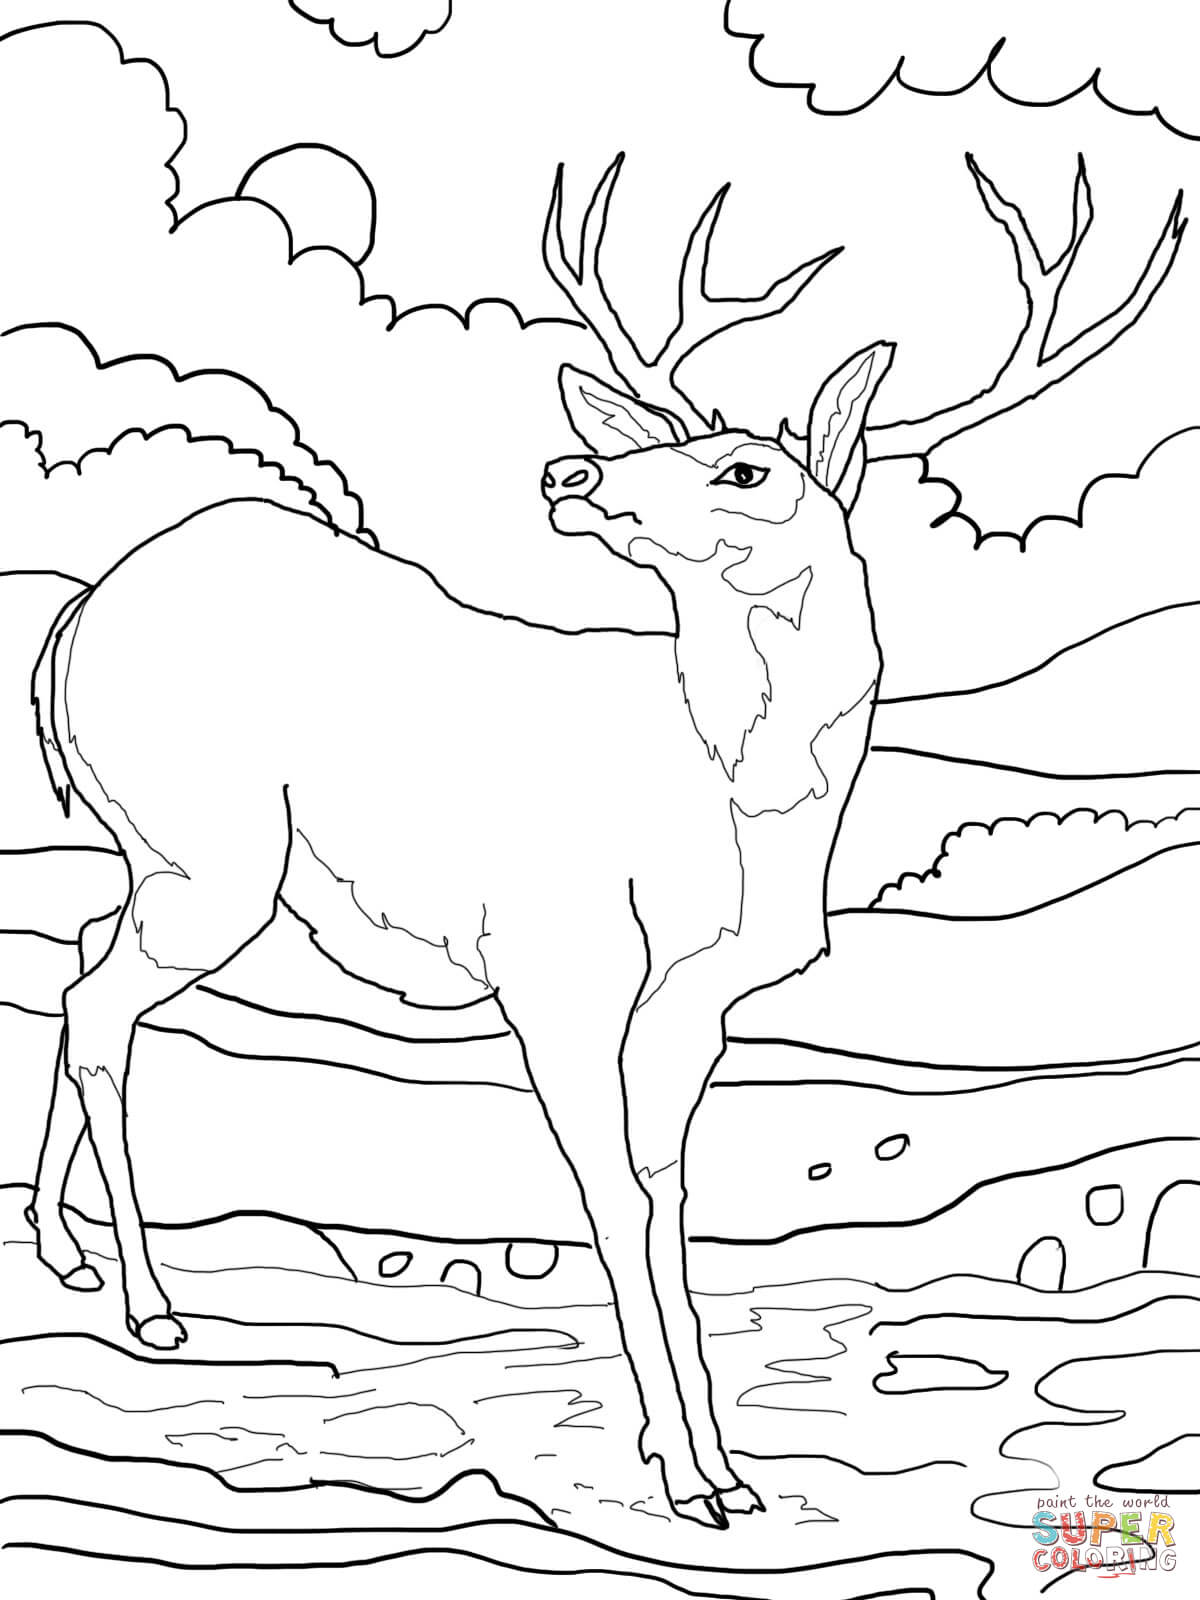 1000 images about coloring pages on pinterest mule deer rocky